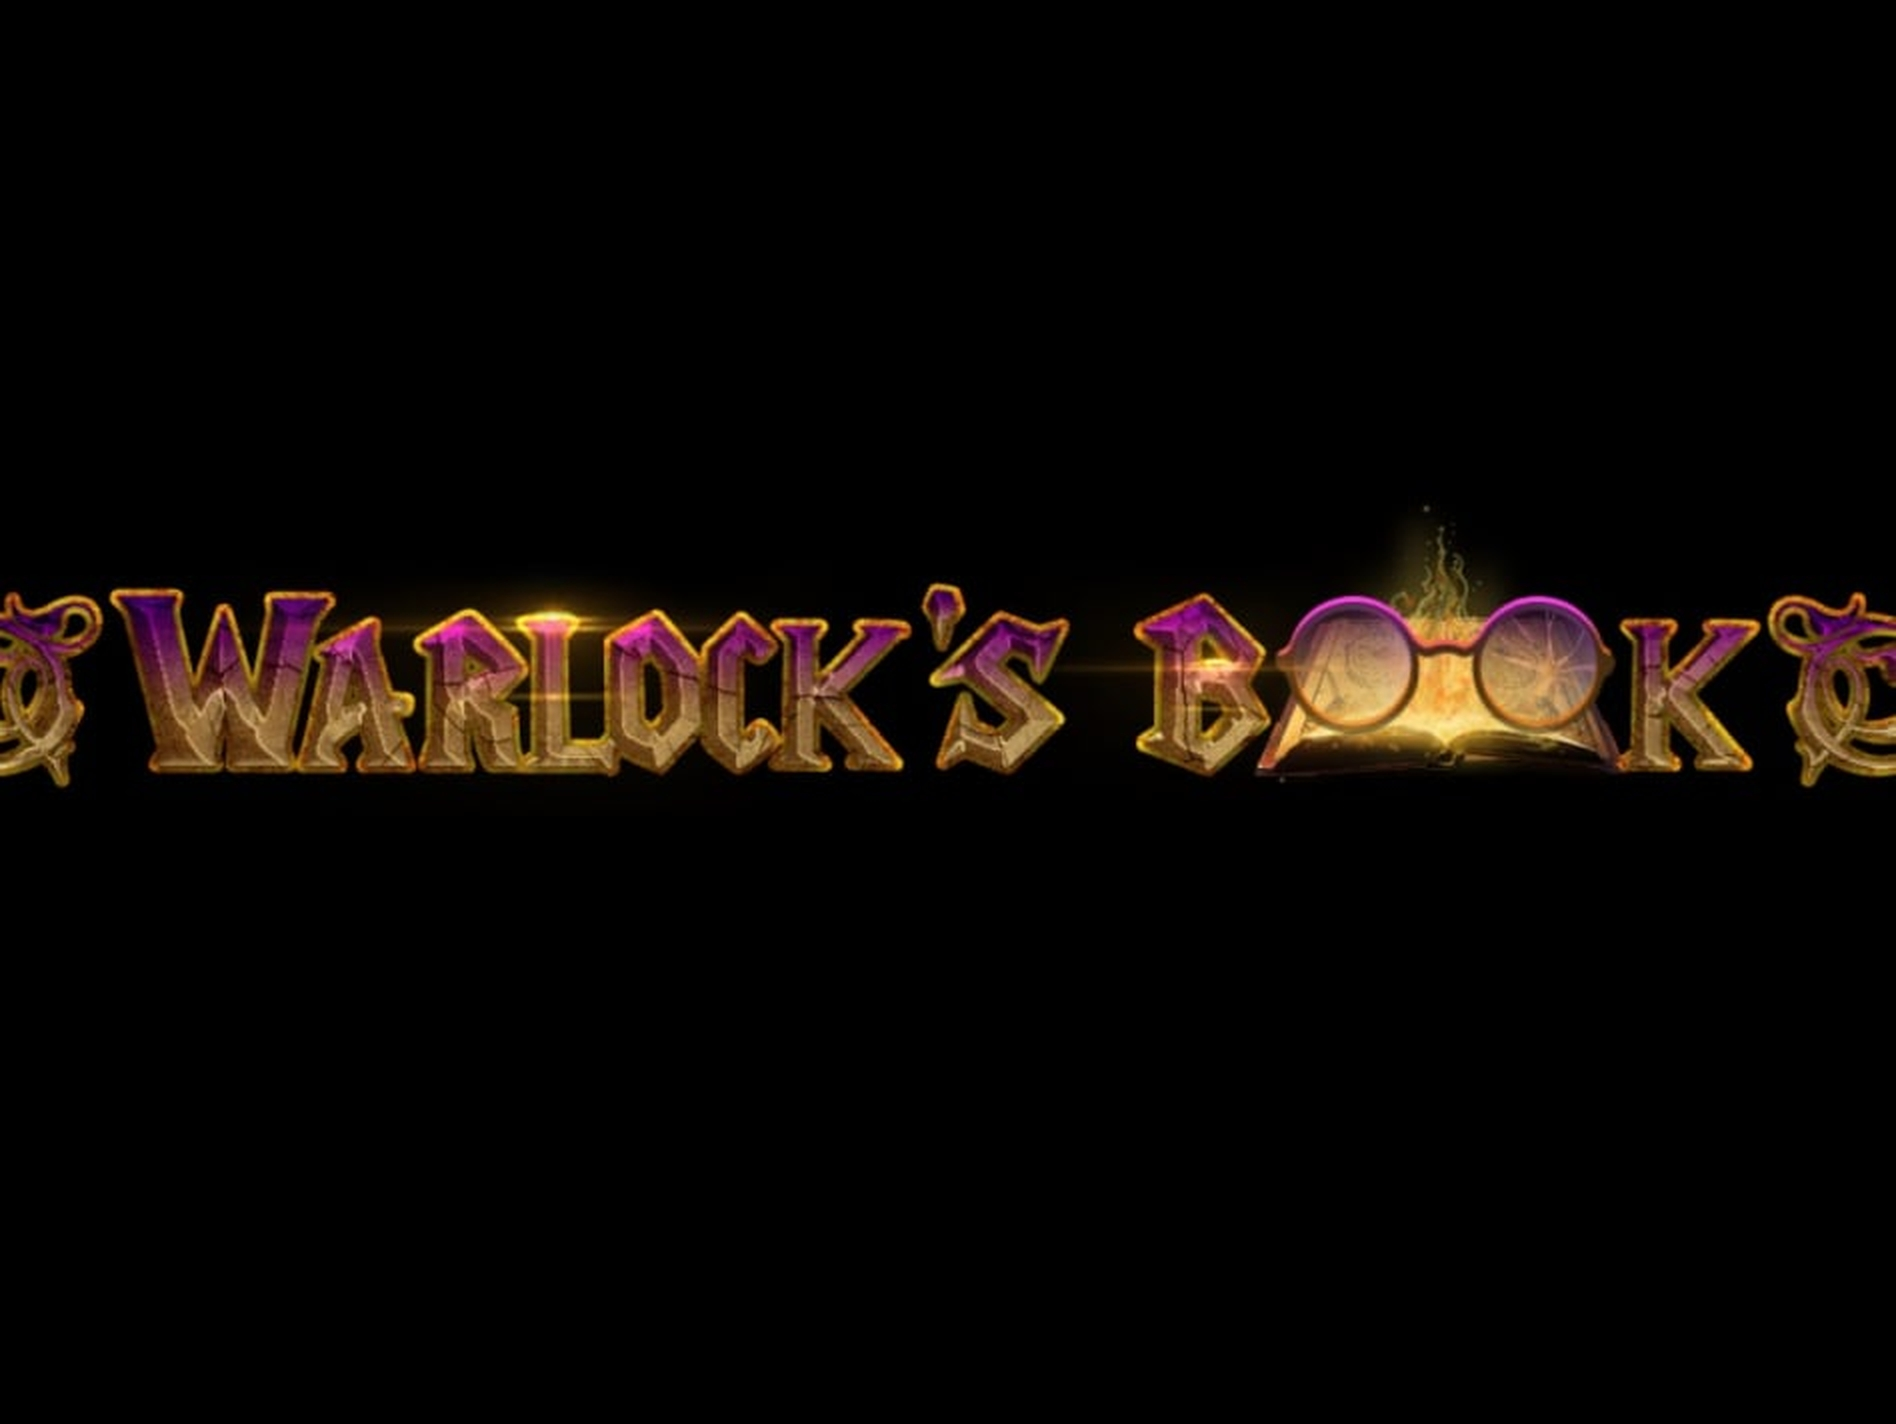 The Warlock's Book Online Slot Demo Game by Fugaso